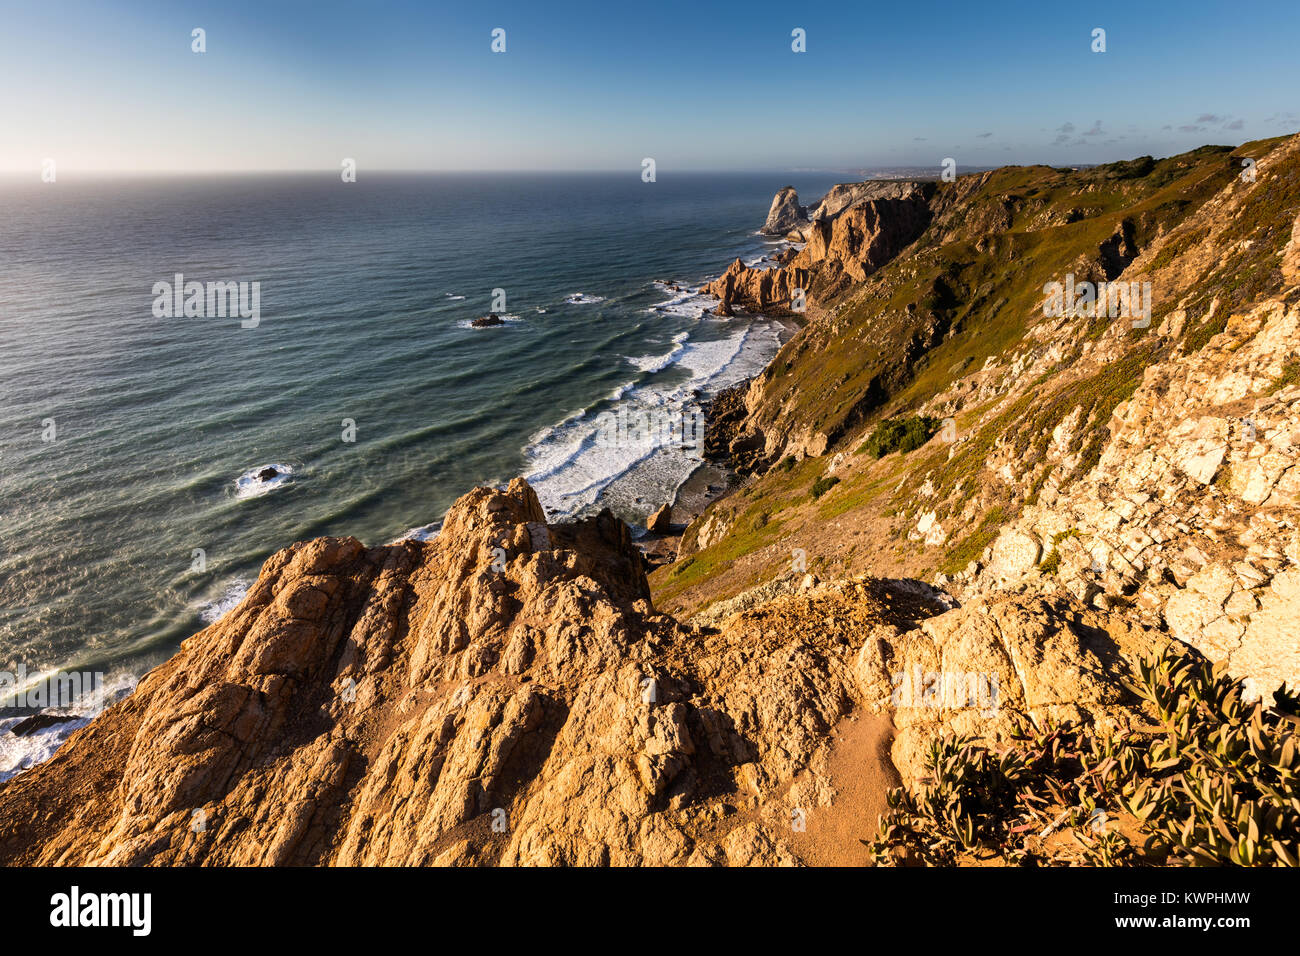 Cape Roca forms the westernmost extent of mainland Portugal, continental Europe and the Eurasian land mass. - Stock Image